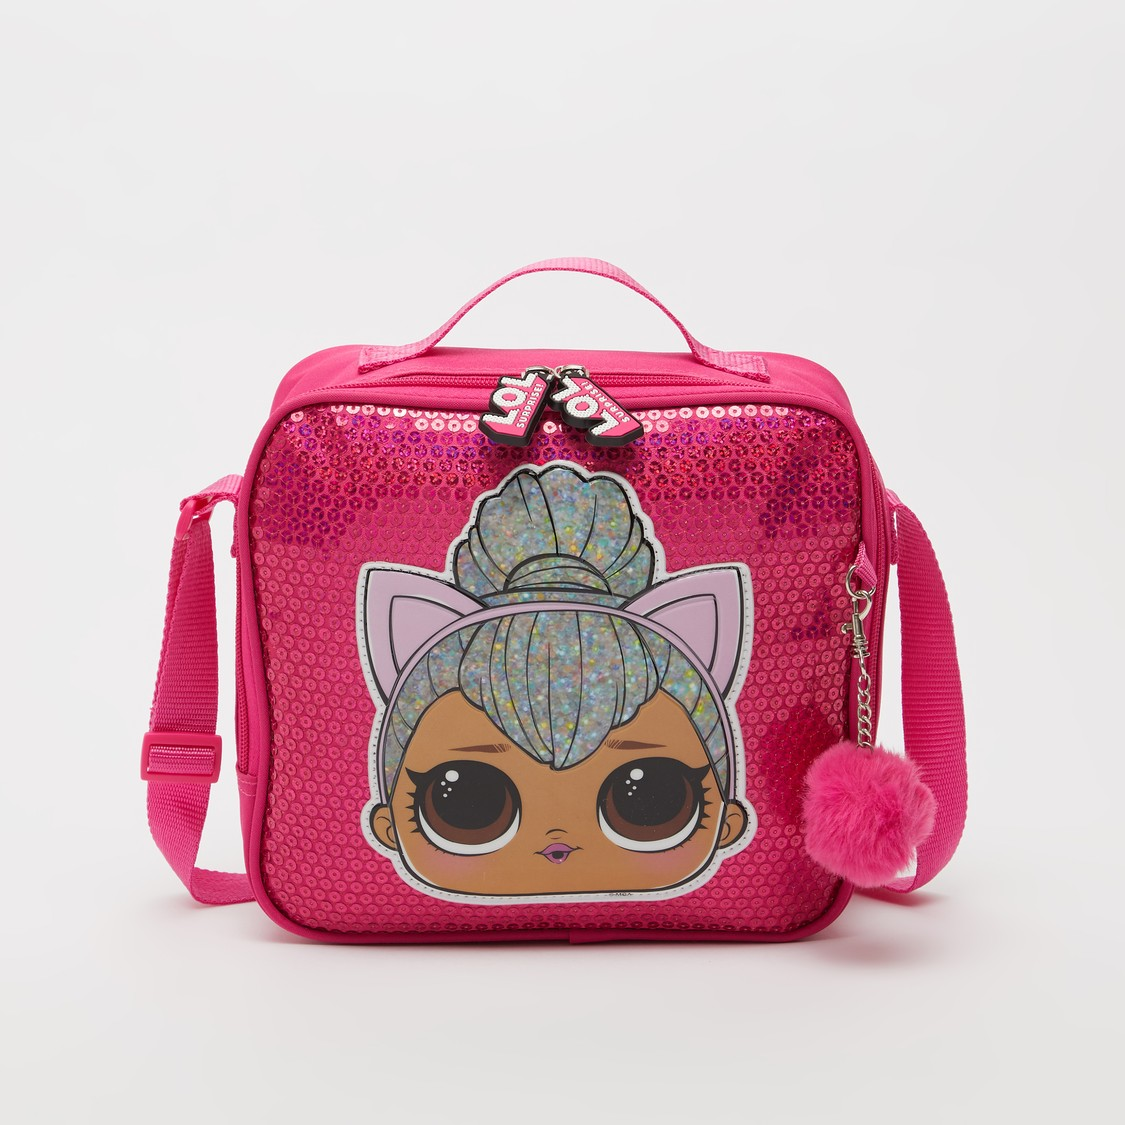 L.O.L. Surprise! Embellished Lunch Bag